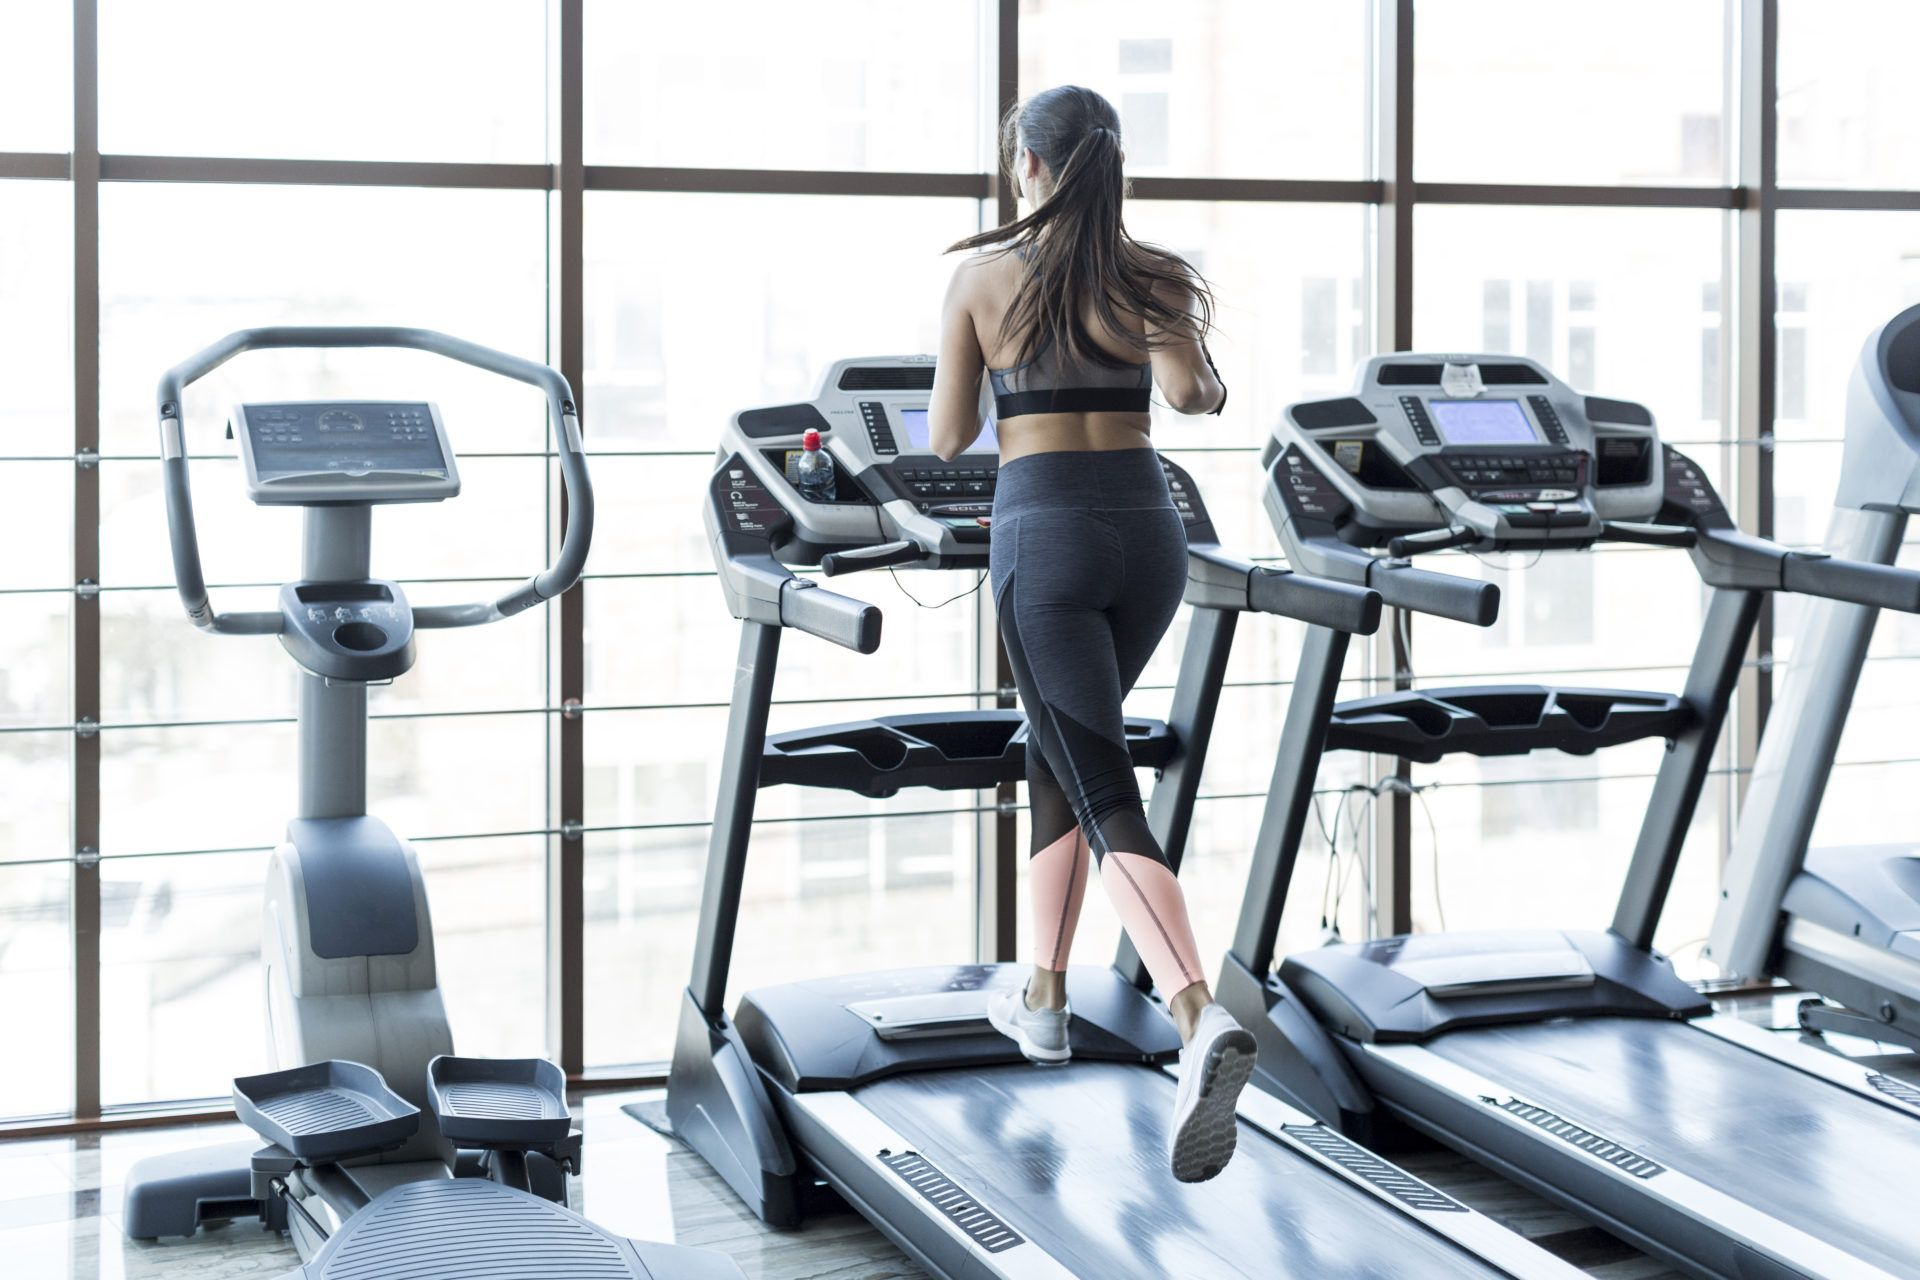 Main Causes of Noise in Gyms